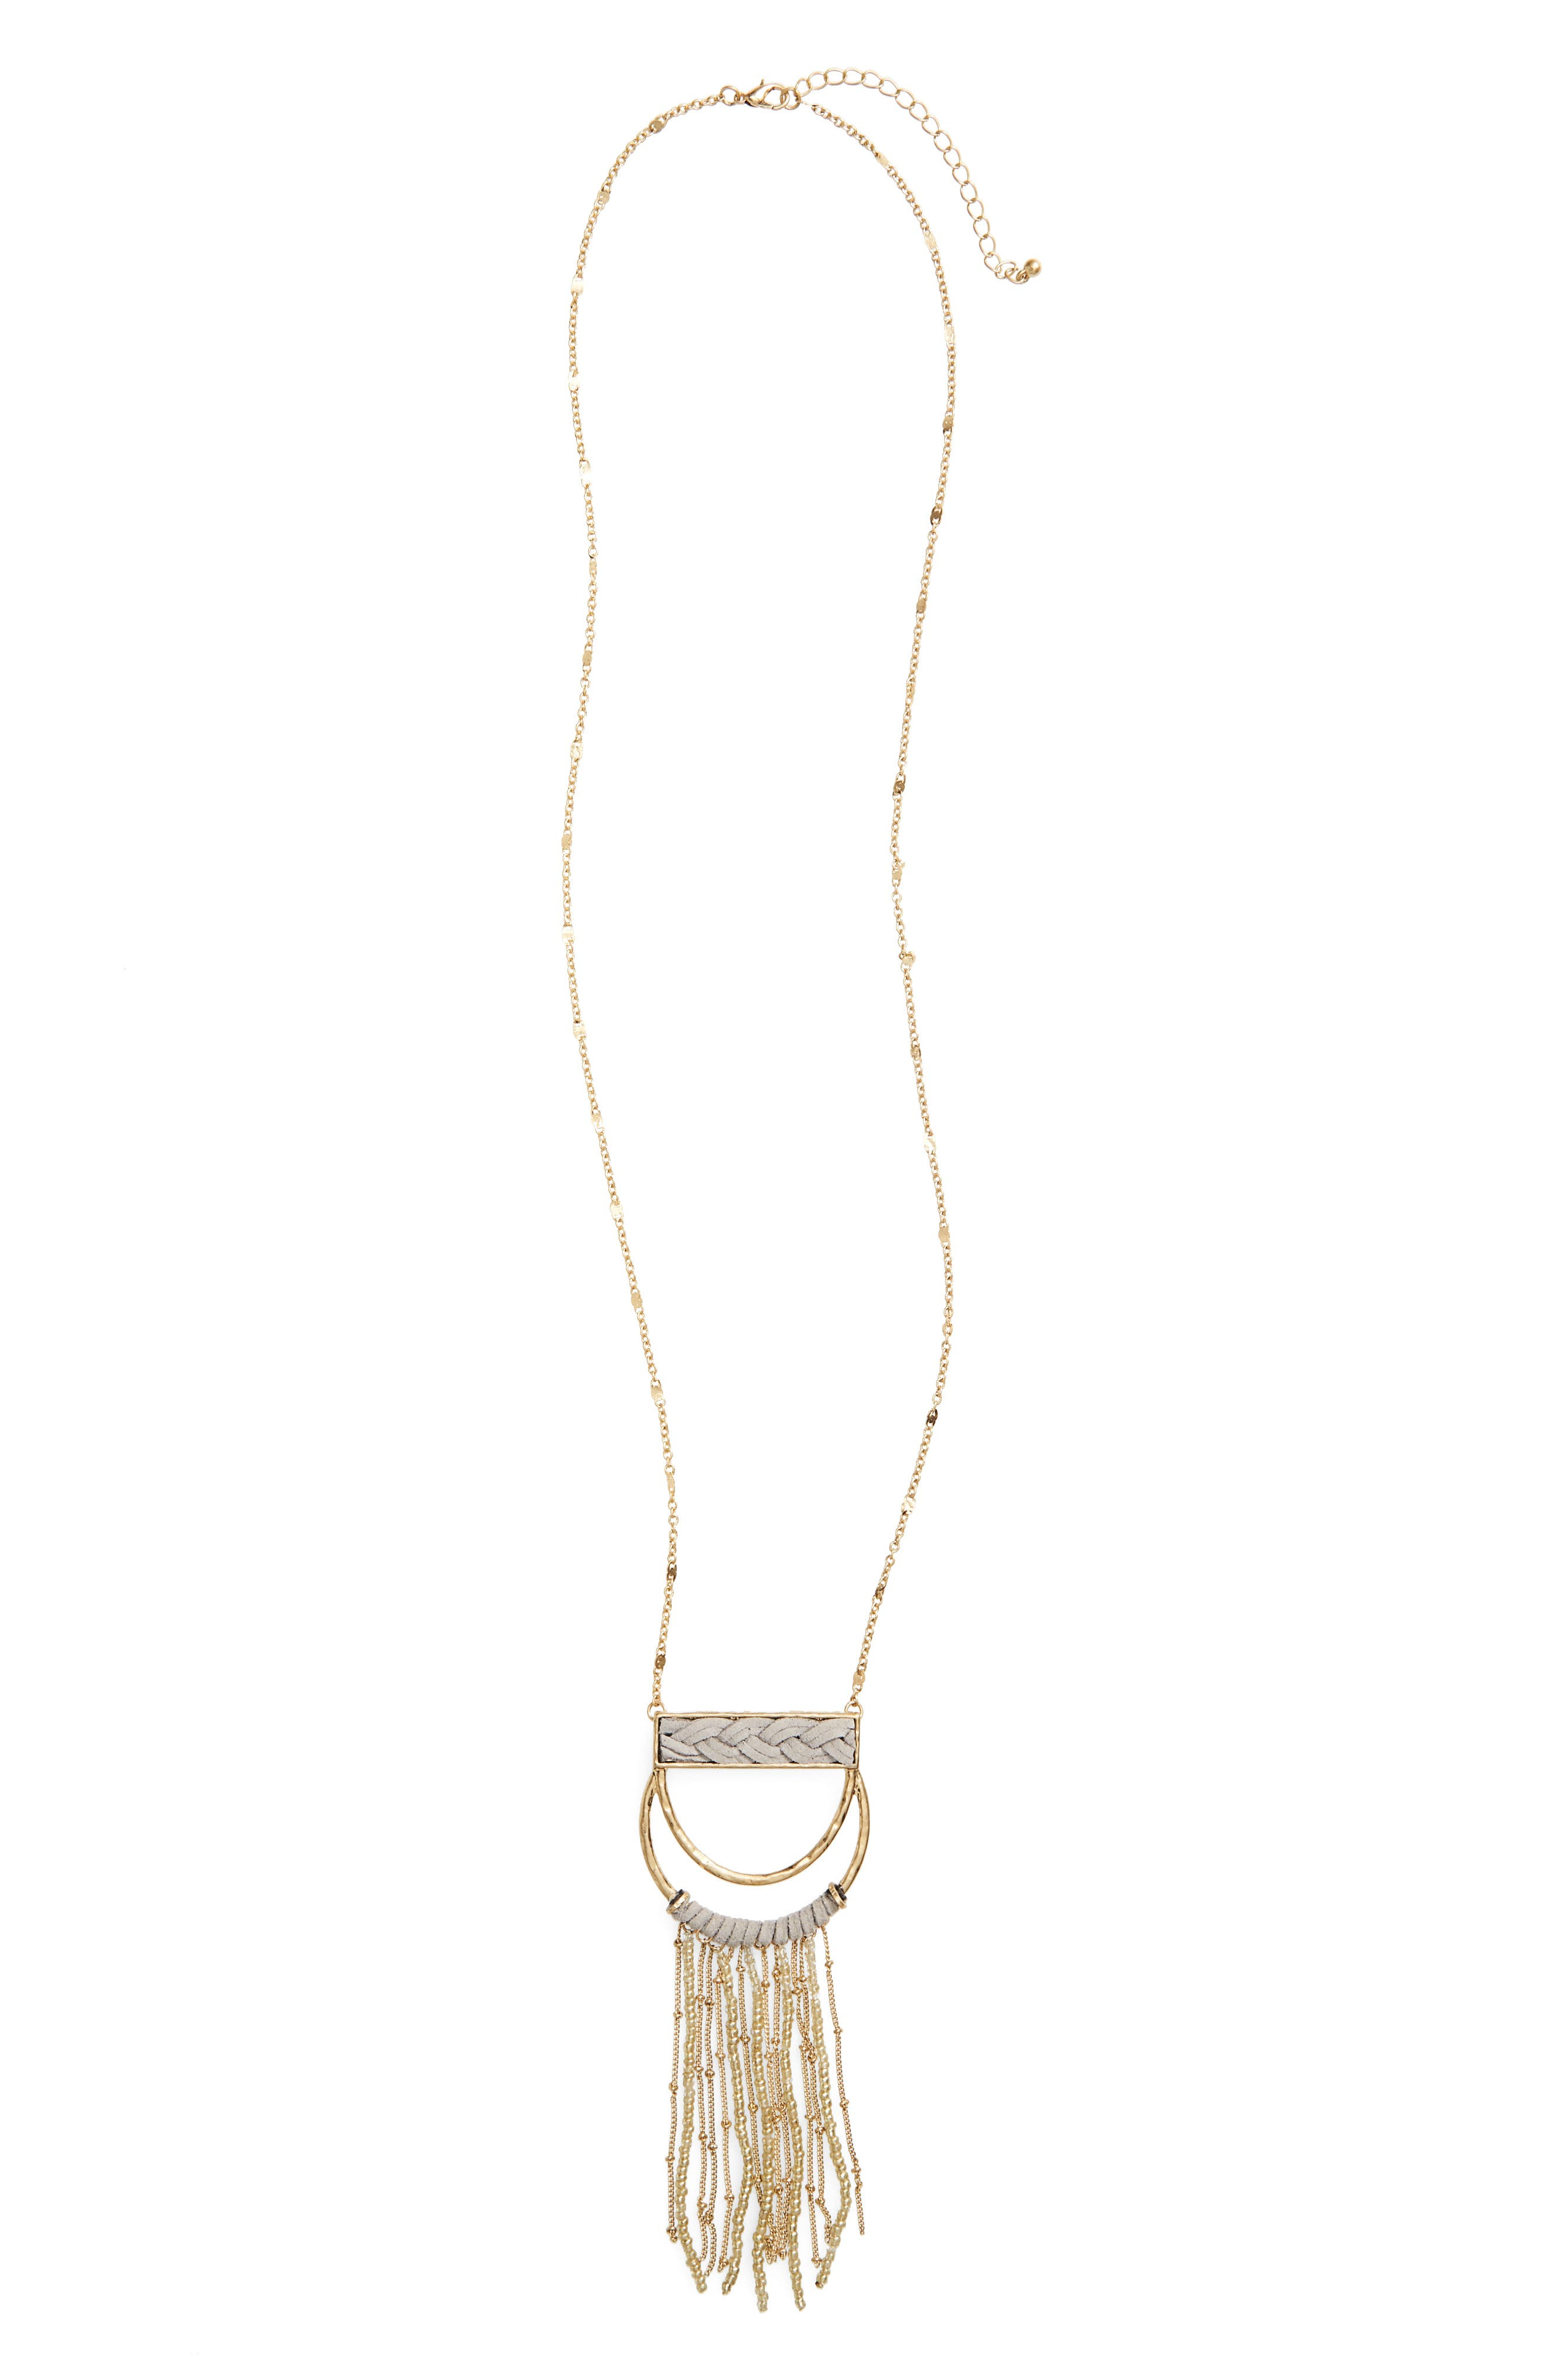 Main Image - Panacea Suede Wrapped Pendant Necklace with Beaded Fringe